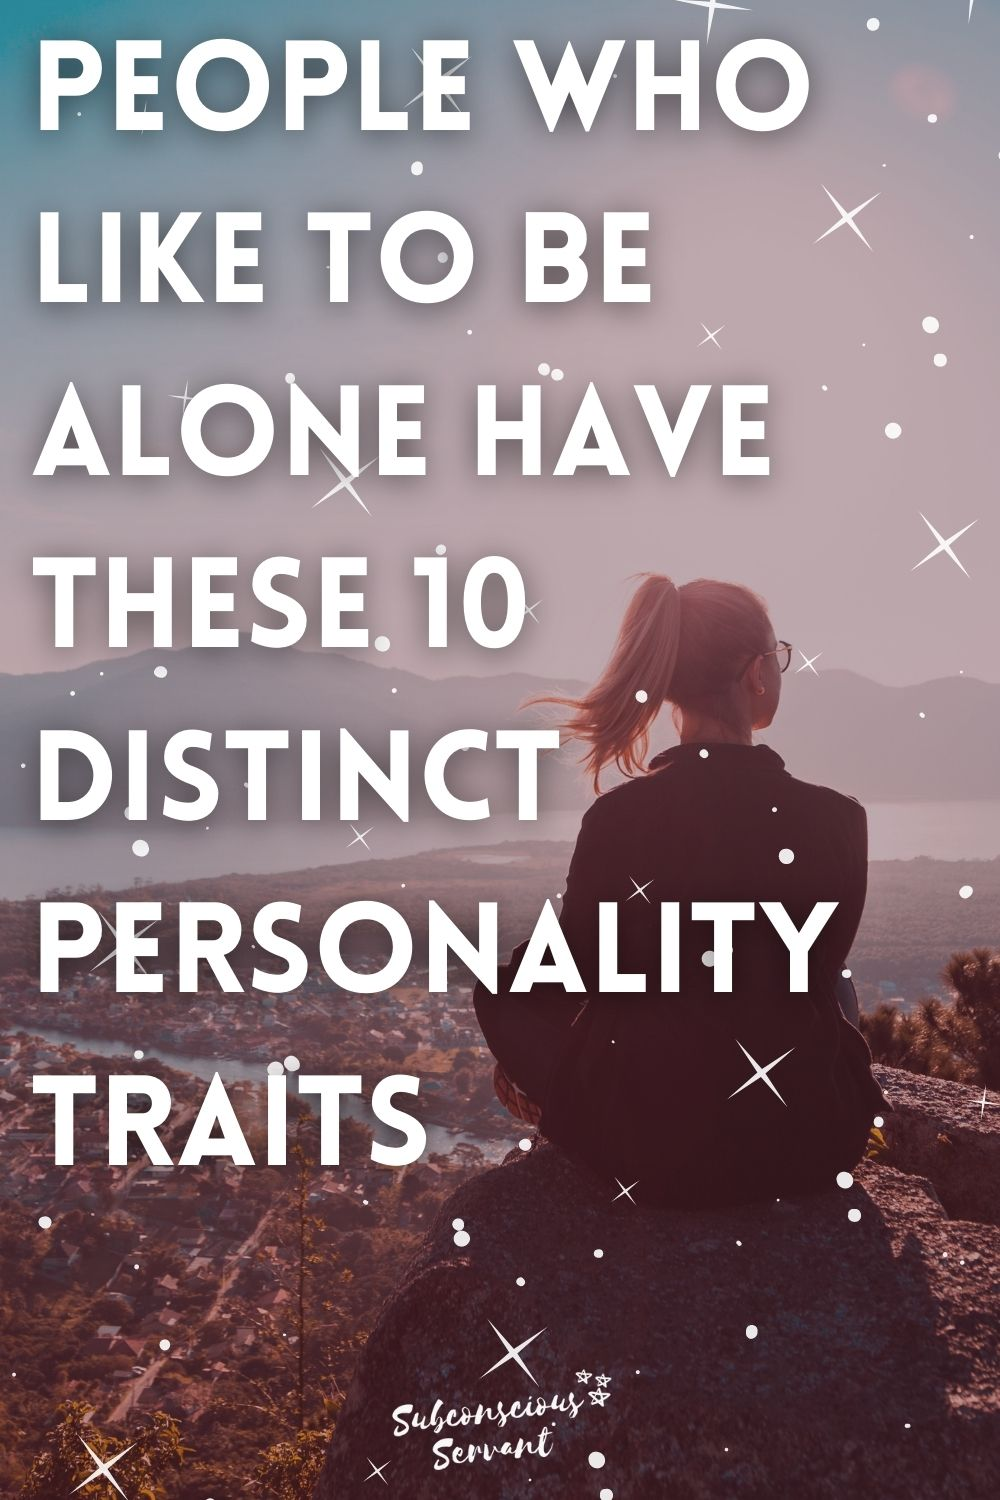 People Who Like To Be Alone Have These 10 Distinct Personality Traits